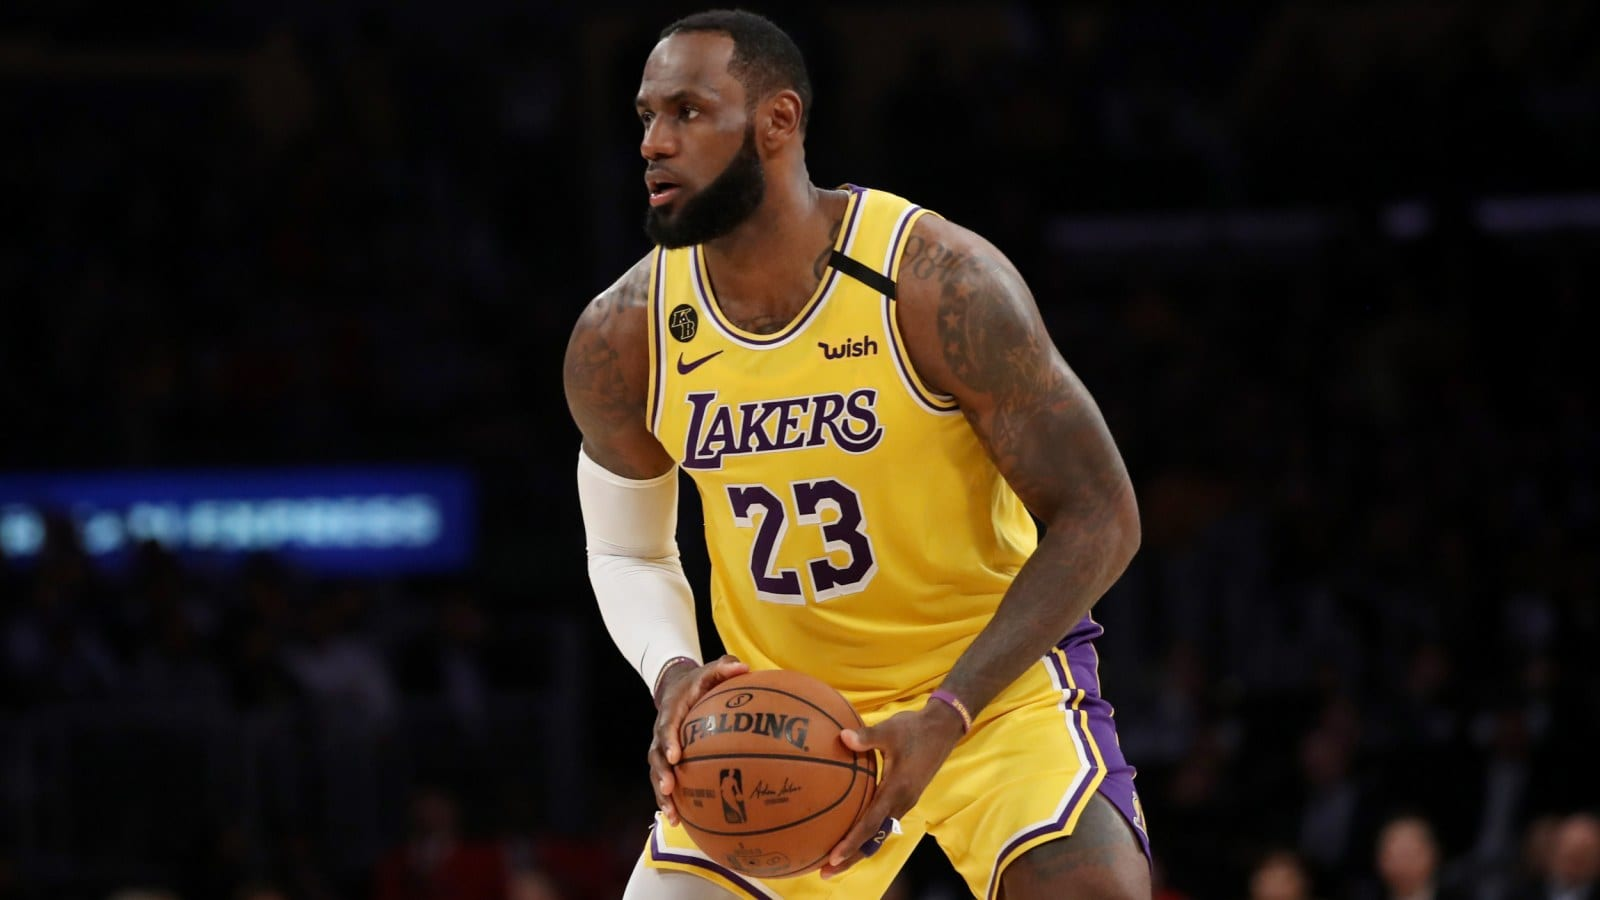 LeBron James and Laker Teammates Practicing In Private Workouts